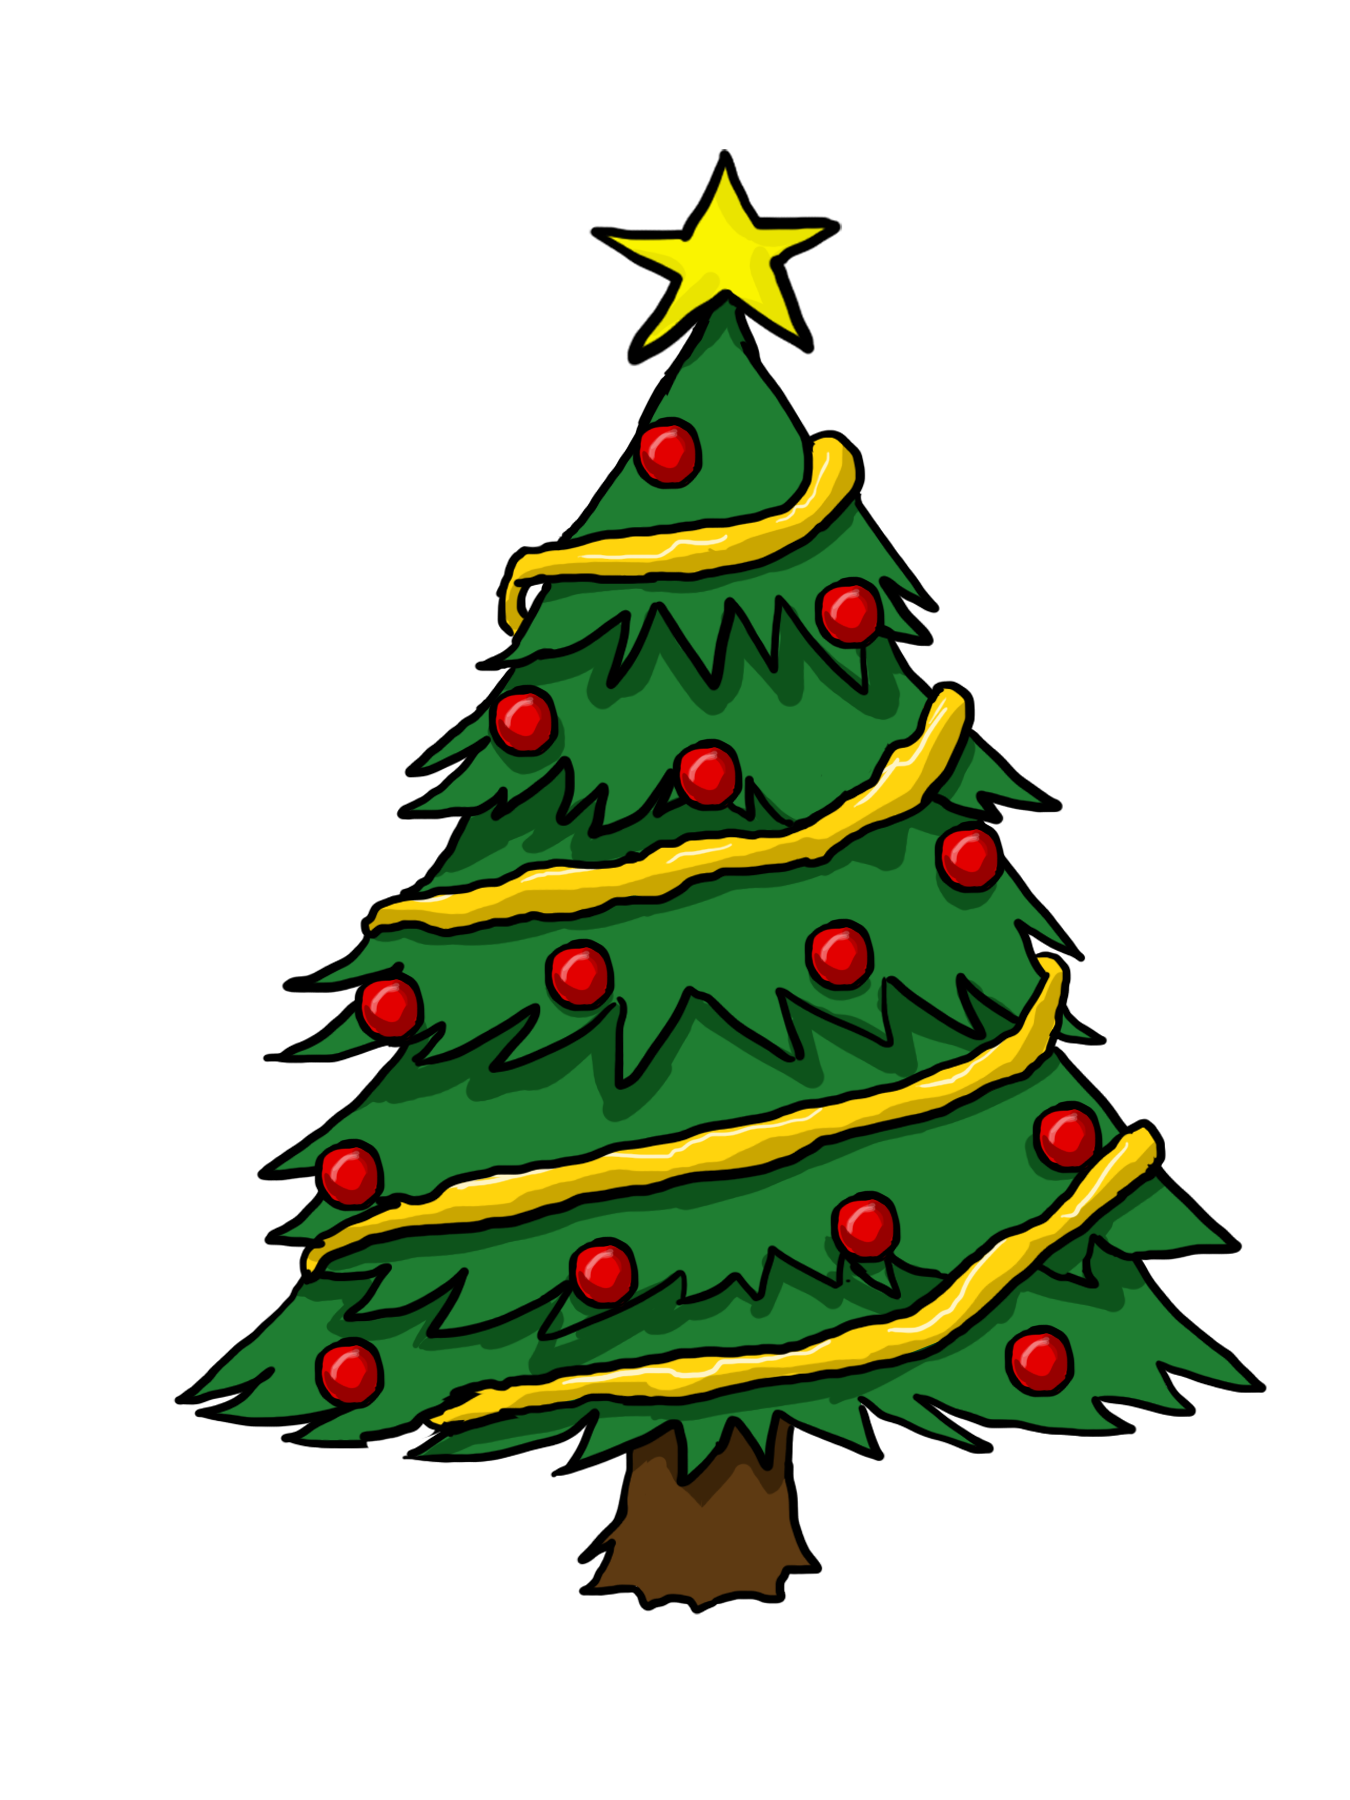 Christmas Tree Clipart Free : christmas, clipart, Cliparts, Christmas, Drawing,, Clipart,, Drawing